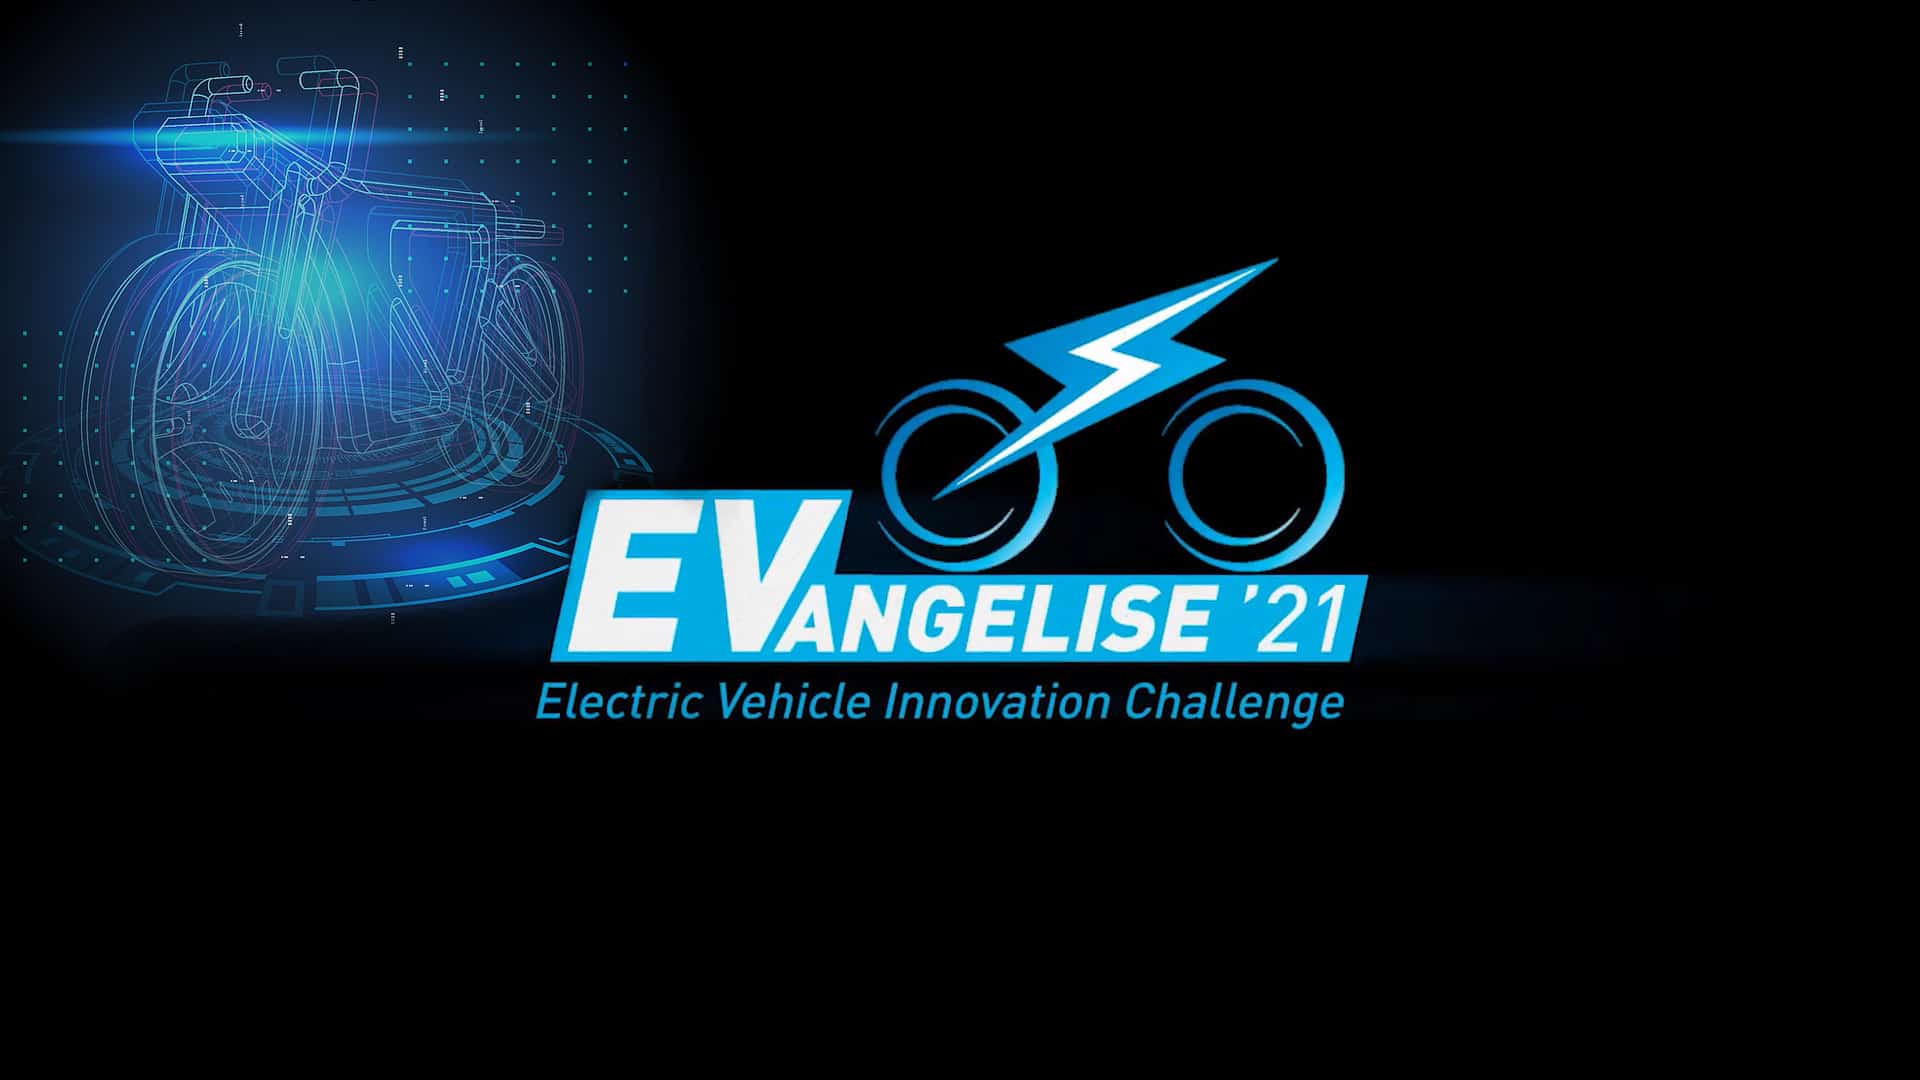 iCreate Launches EVangelise '21 - an Electric Vehicle Innovation